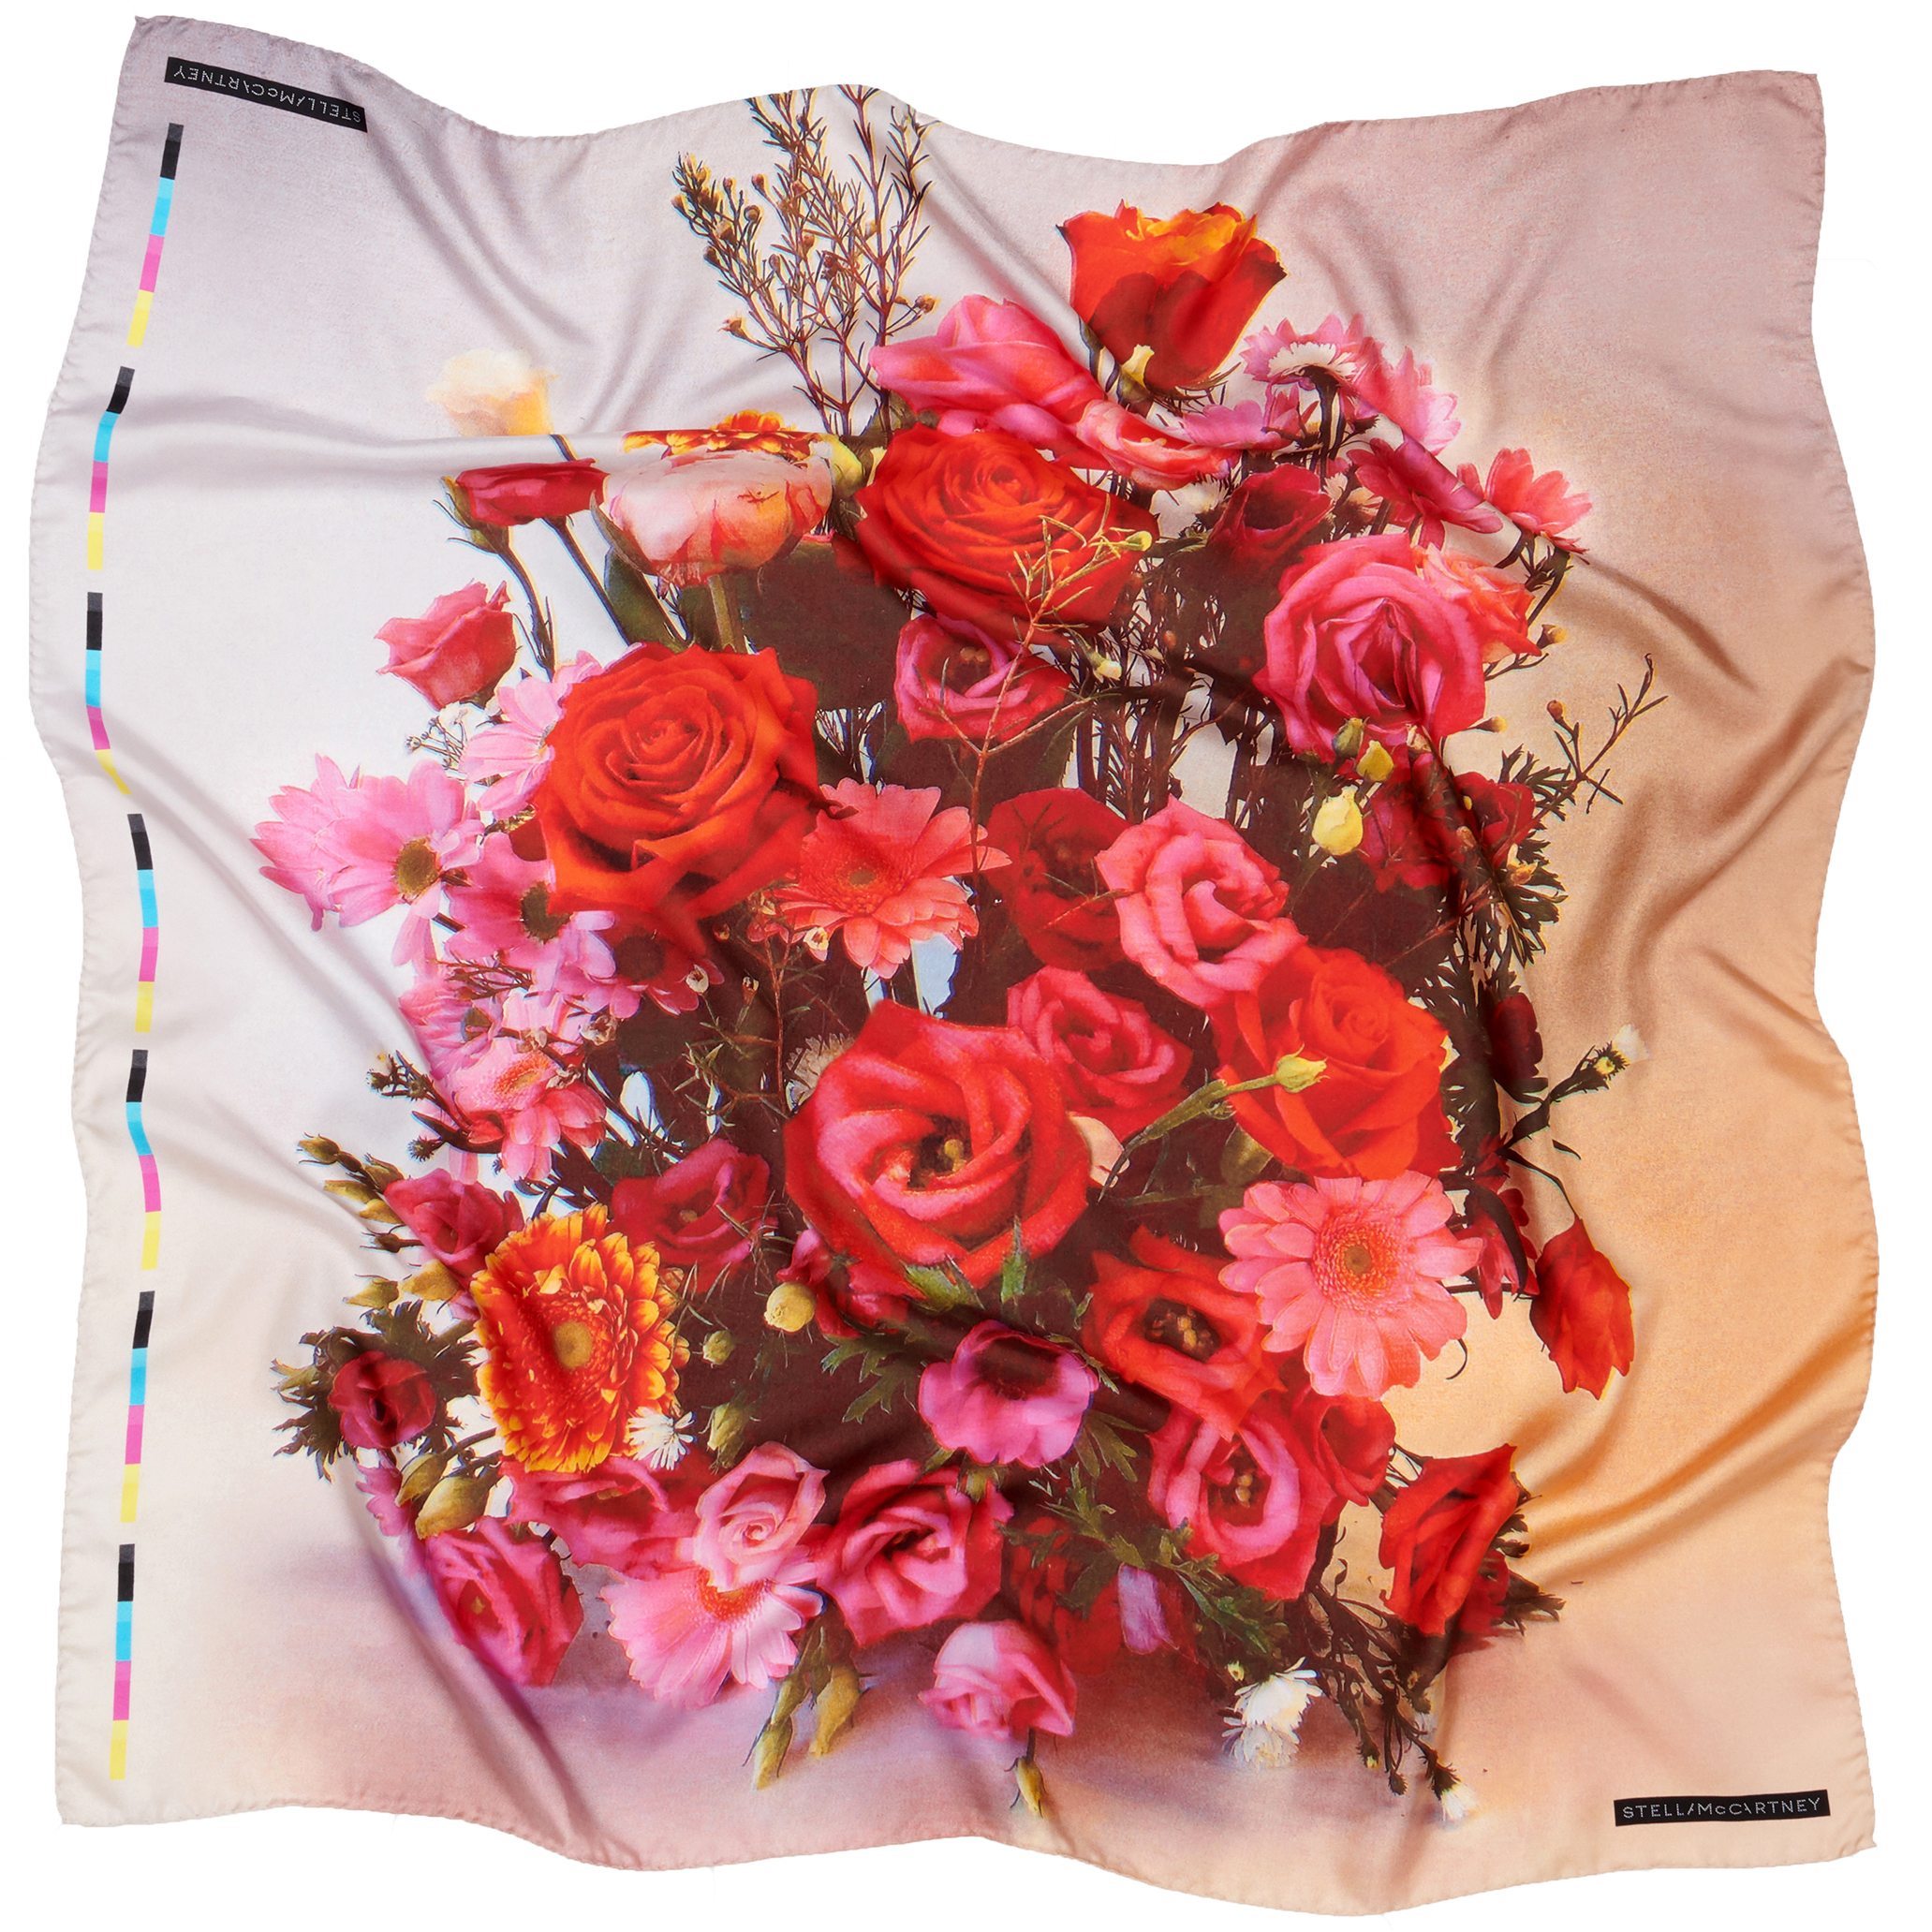 Rose bouquet scarf by Stella McCartney